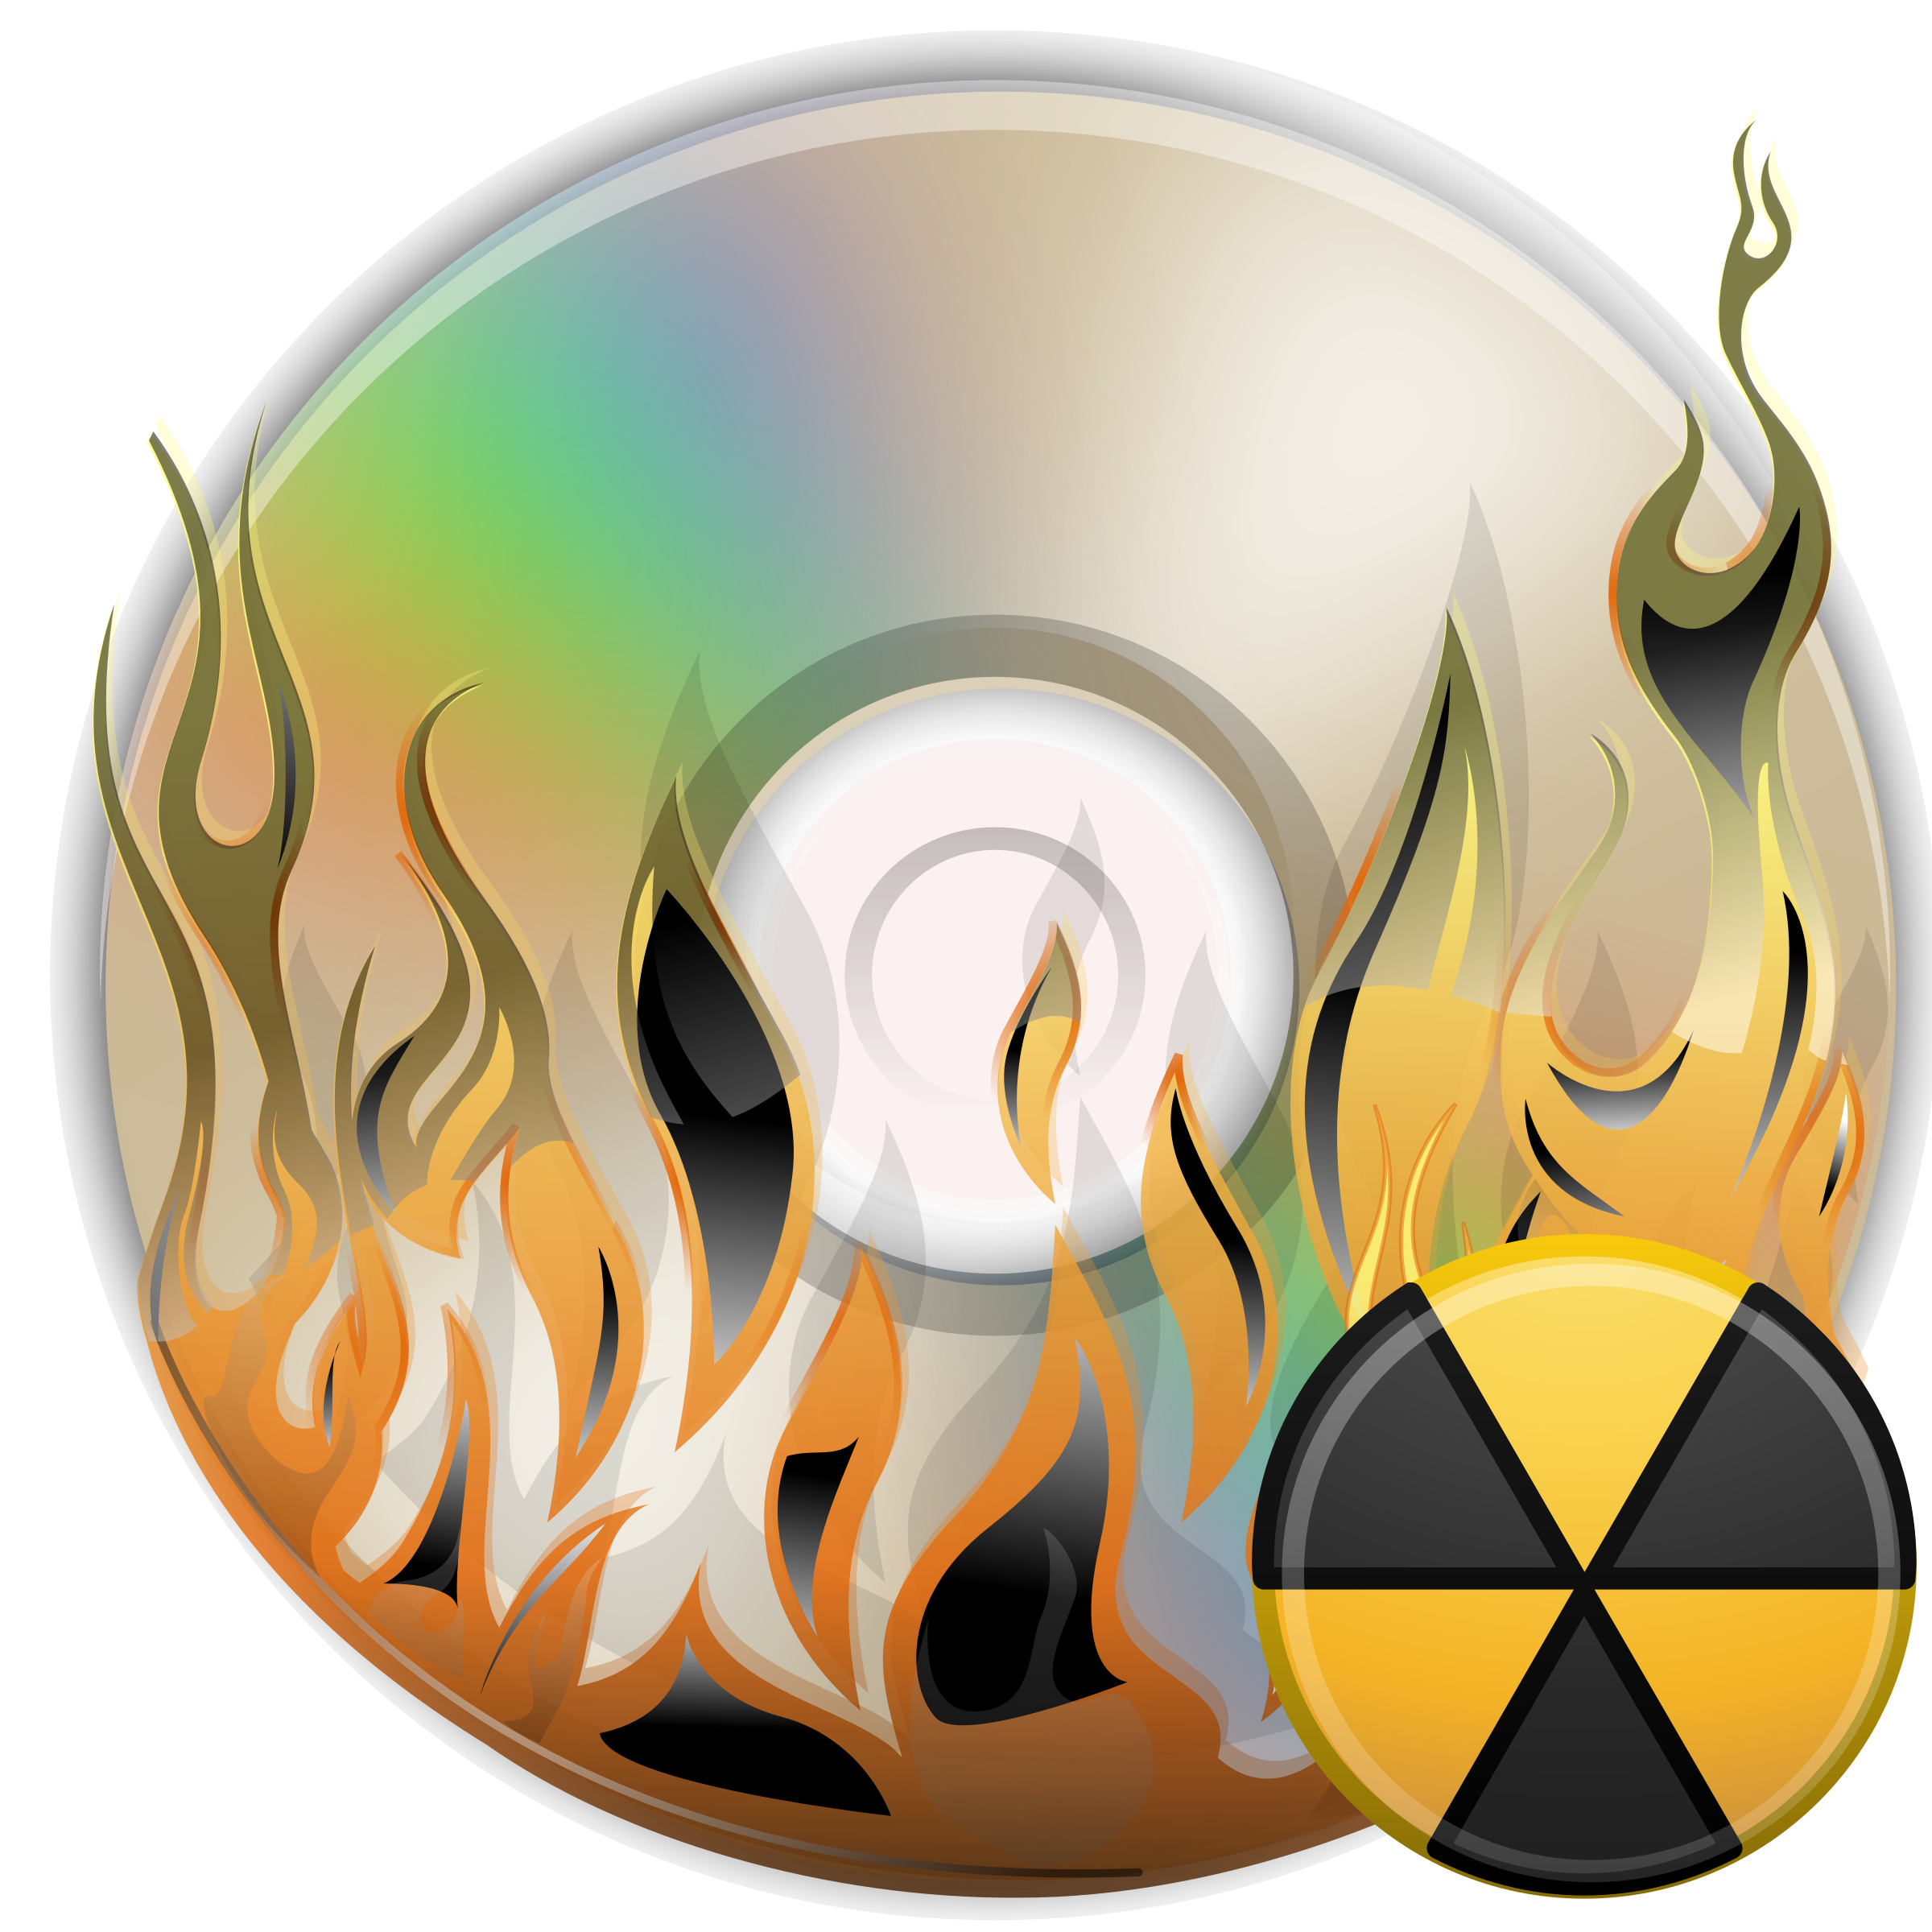 Money burning clipart free Burn disk Icons PNG - Free PNG and Icons Downloads free